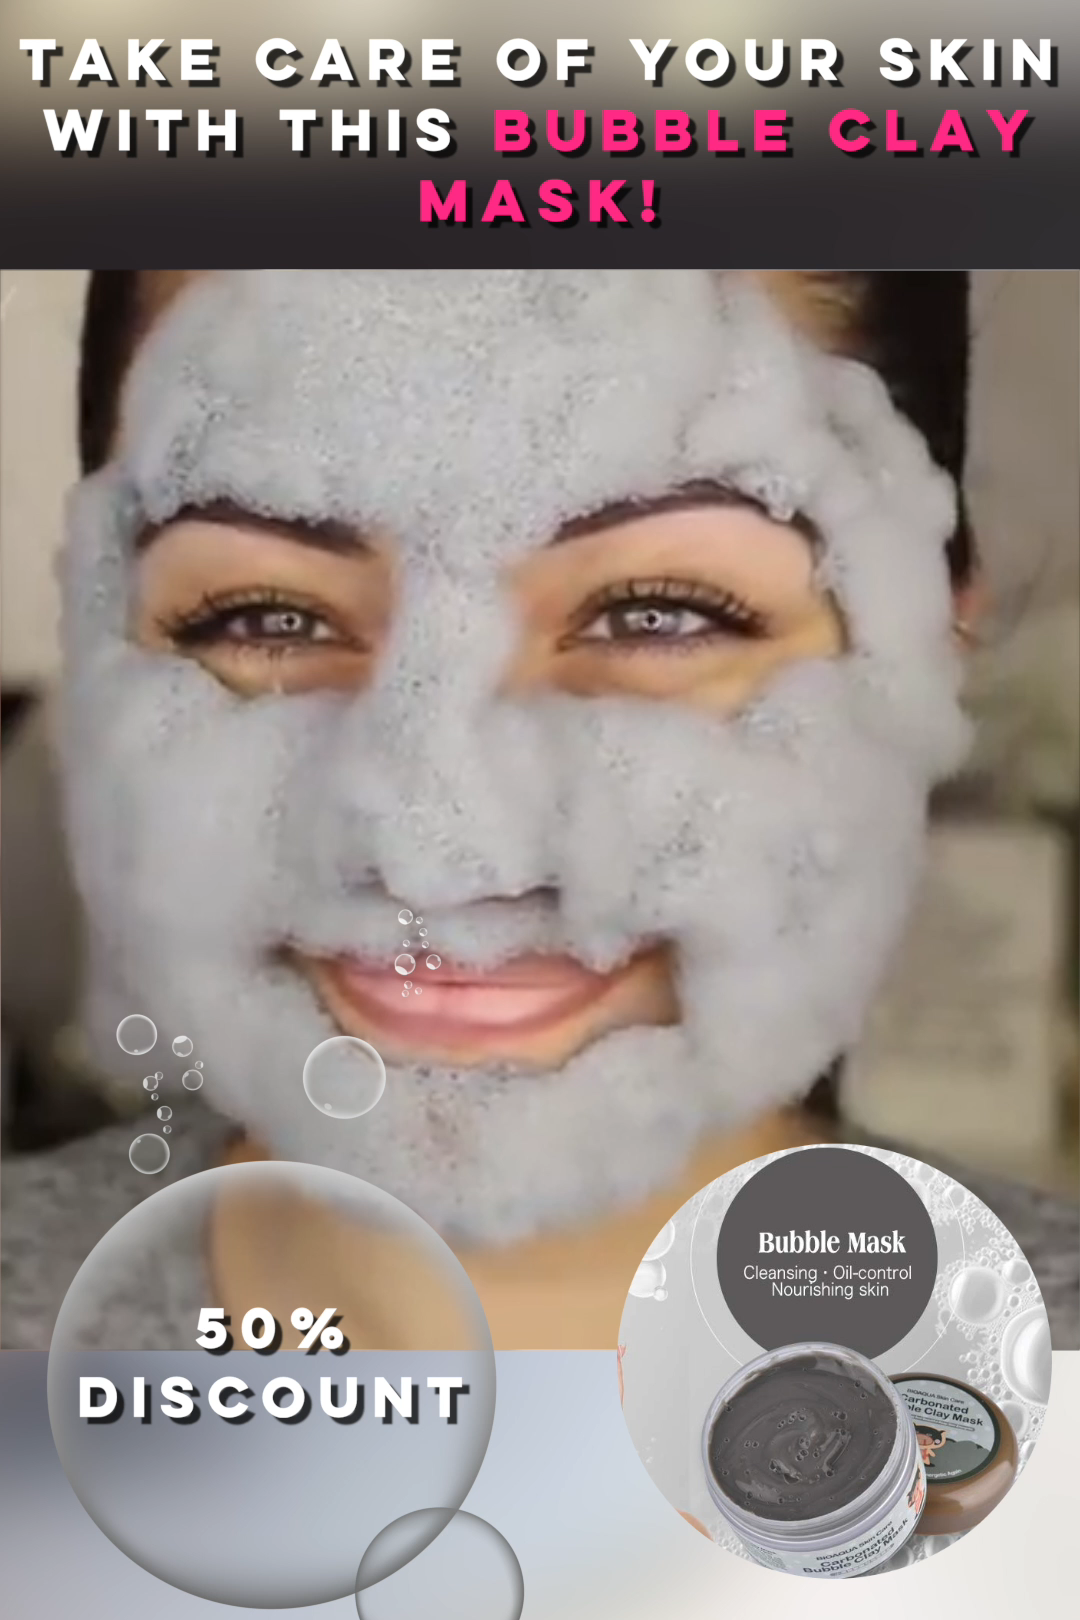 Carbonated Bubble Clay Mask - Couthier